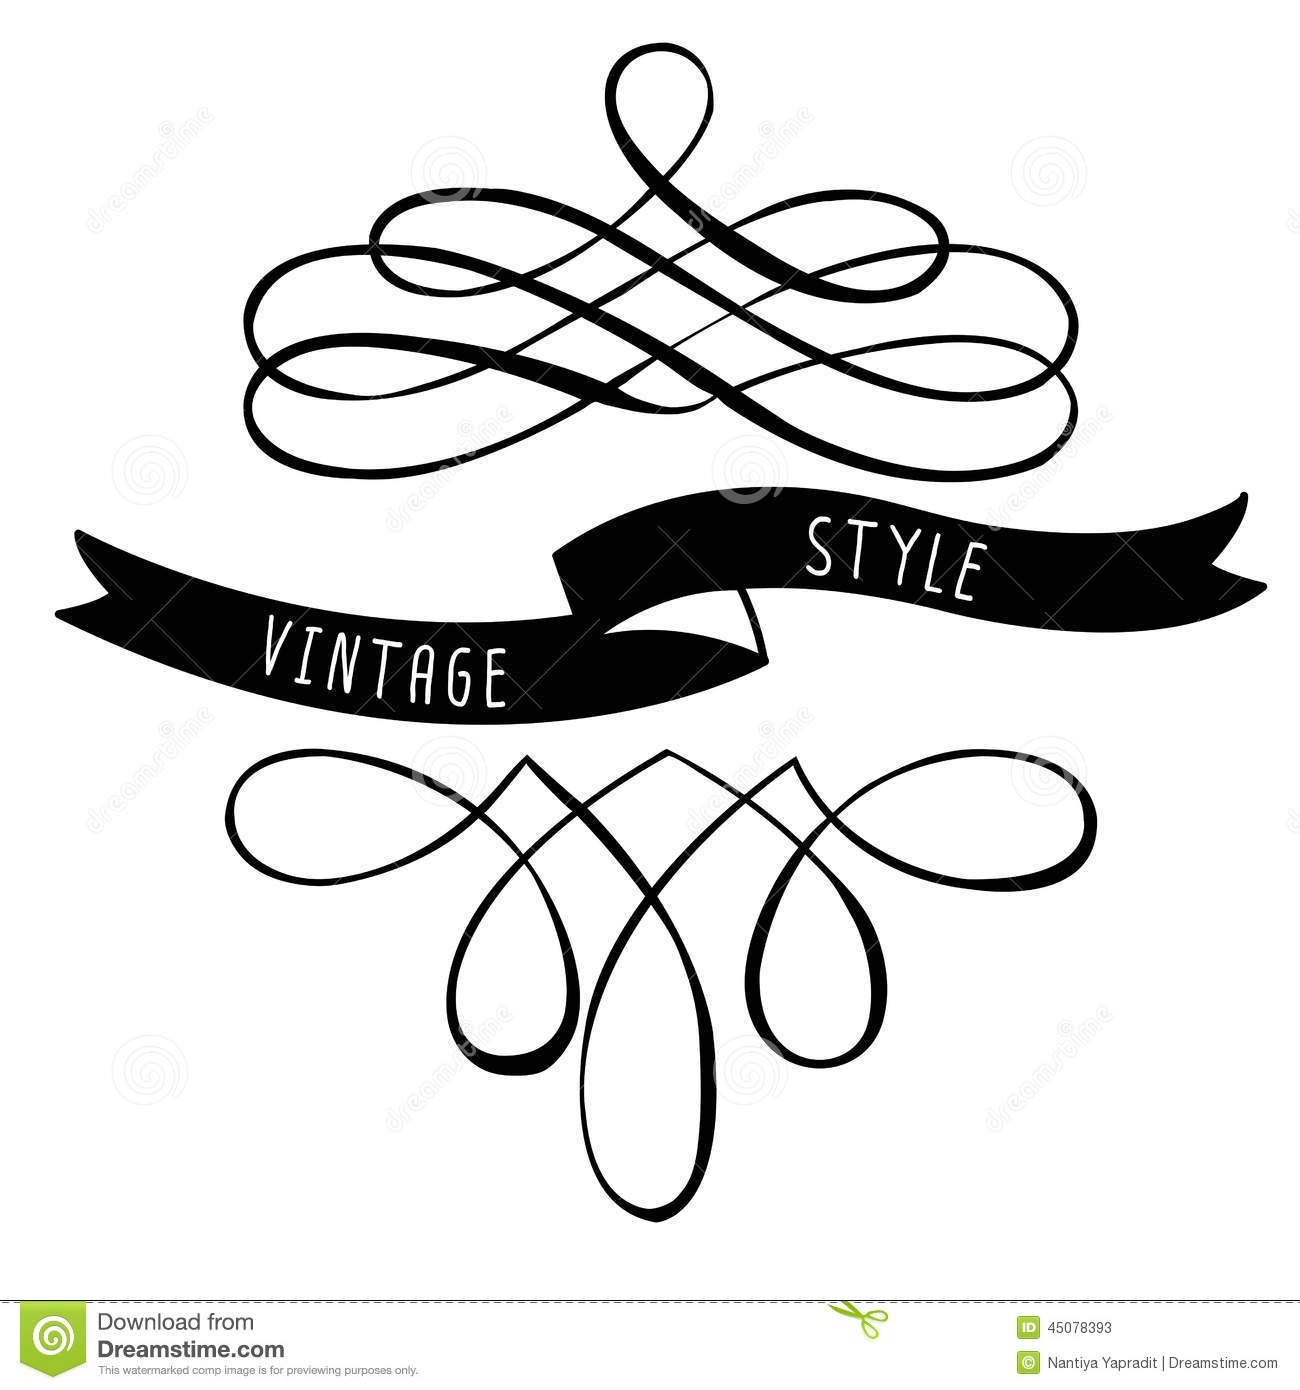 Calligraphy design elements banners and ribbons stock